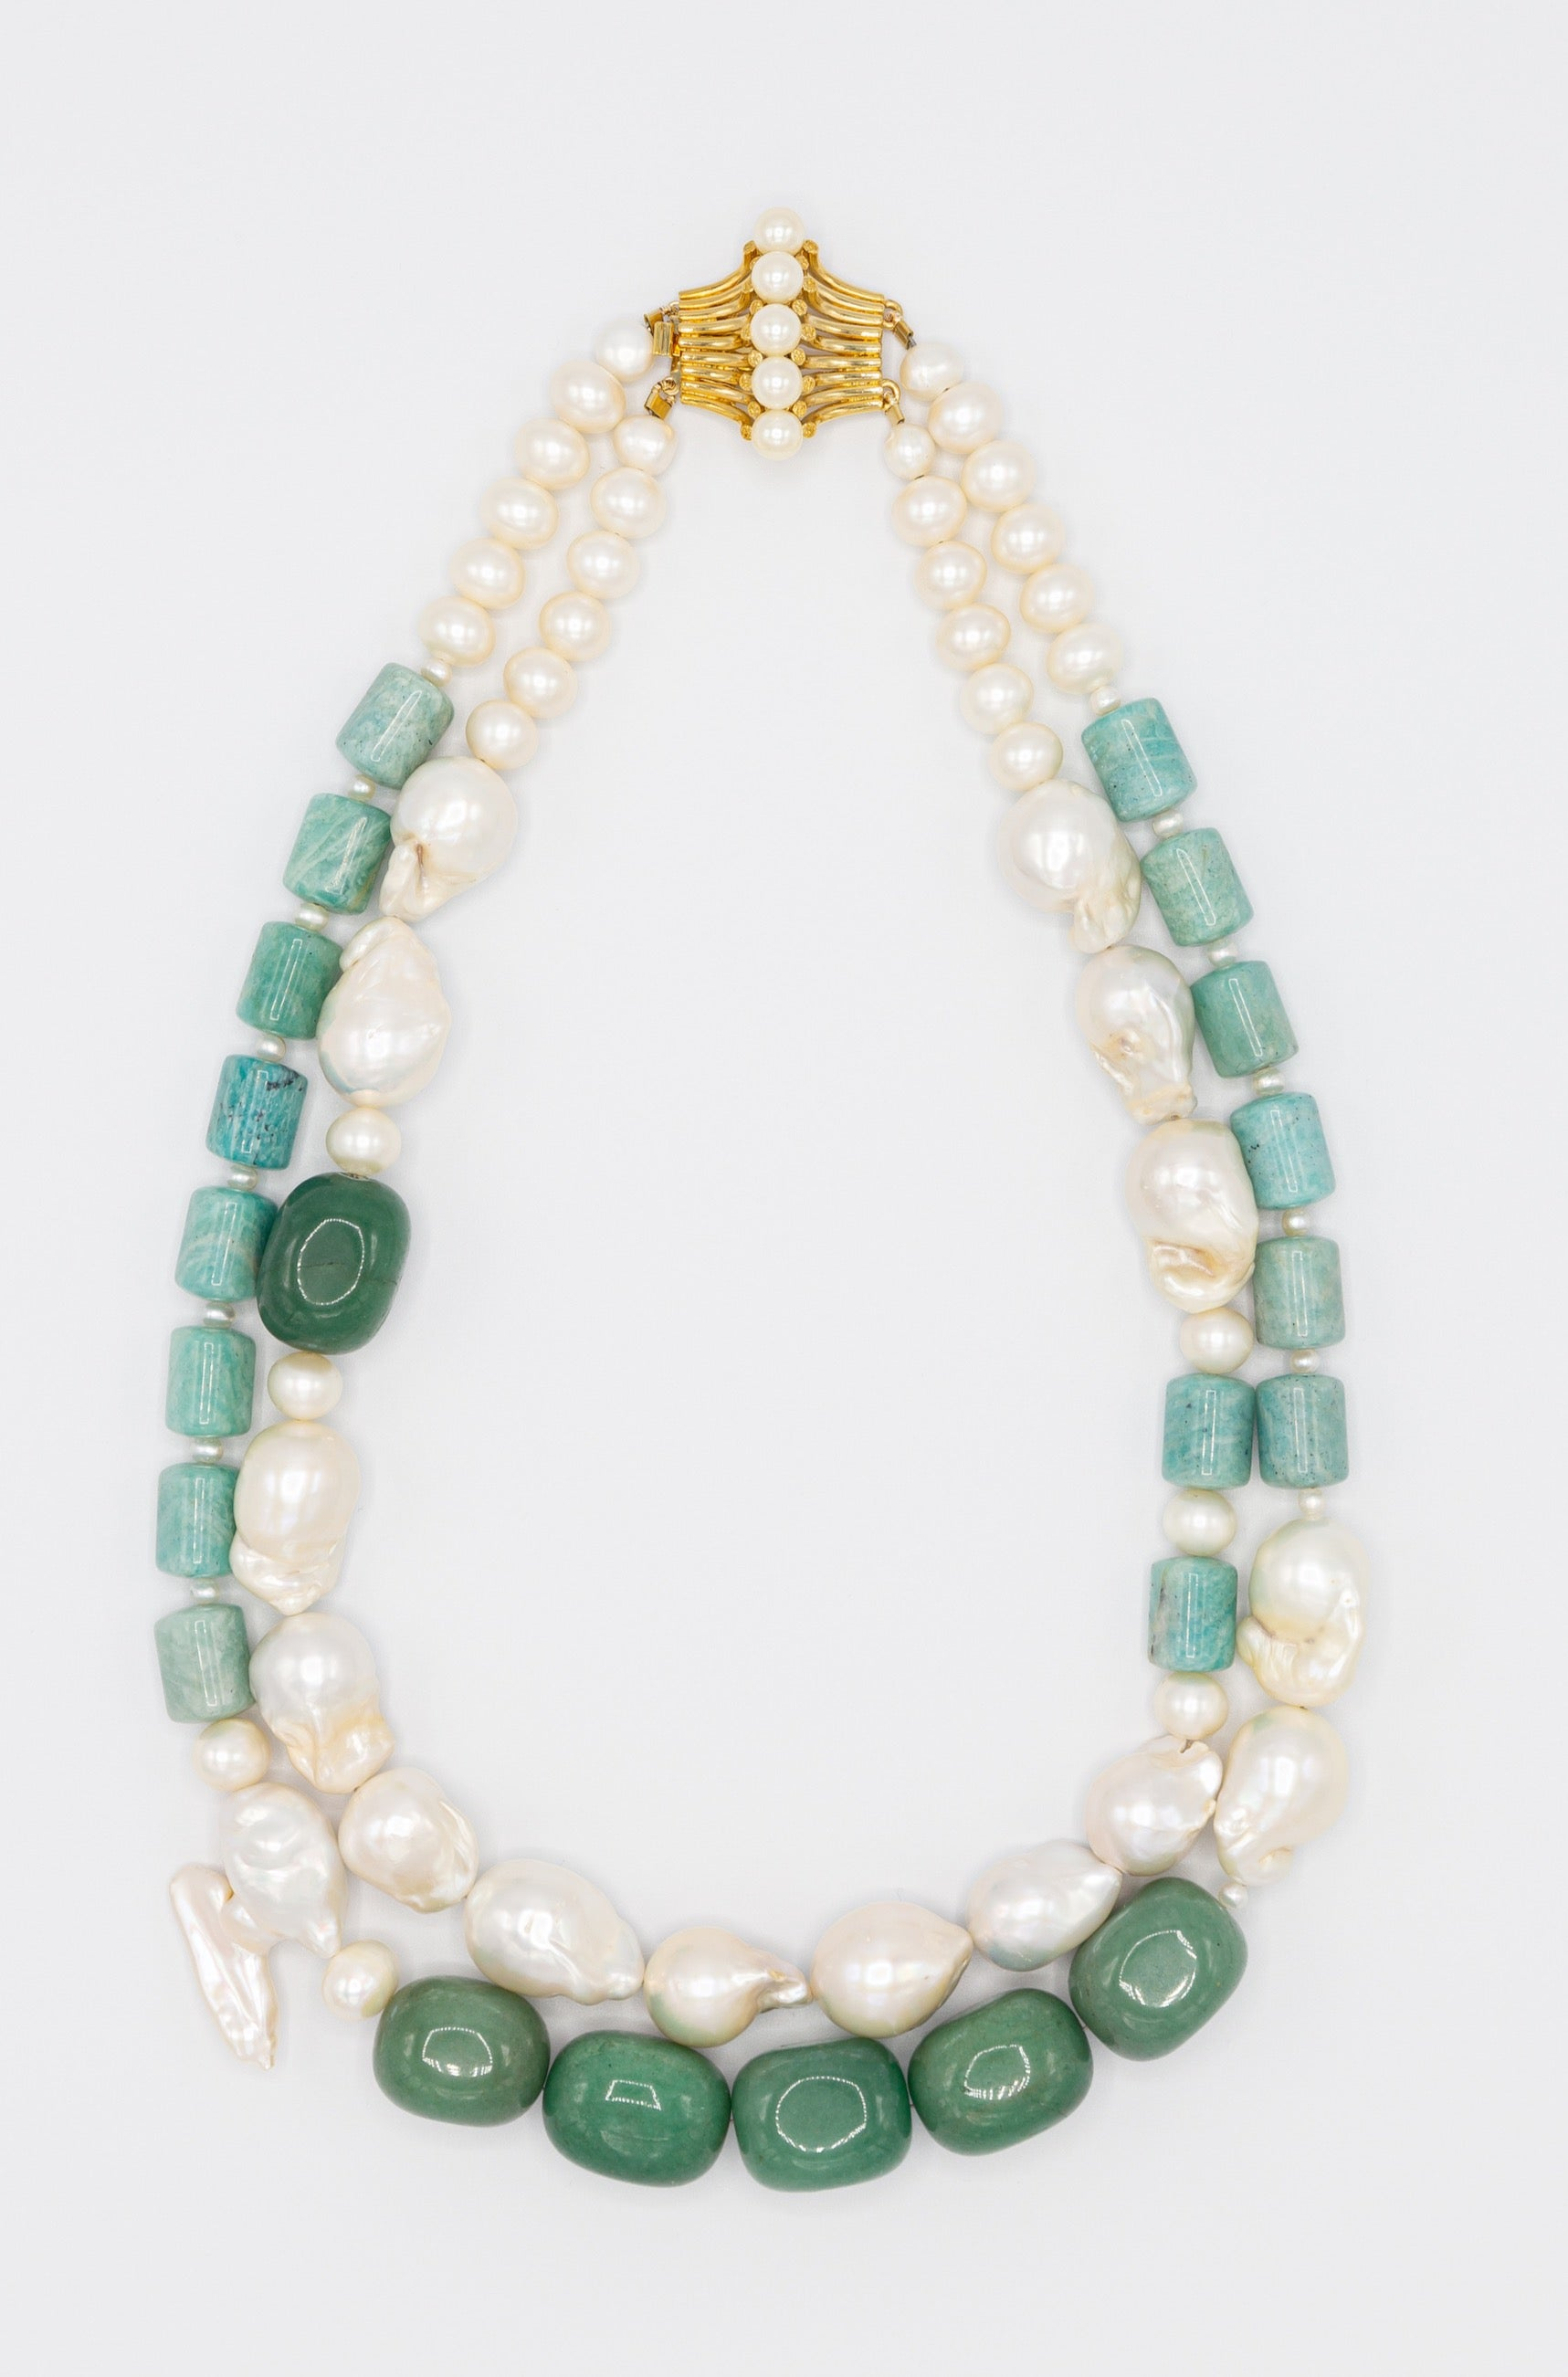 Enjoy this fantastic duo necklace made of the high quality baroque, keishi and freshwater pearls, jade and amazonite beads, crystal quartz, finished with remarkable gold plated silver clasp. The brilliant shades of green are the distinguishing feature of this elegant yet cheerful assemble.